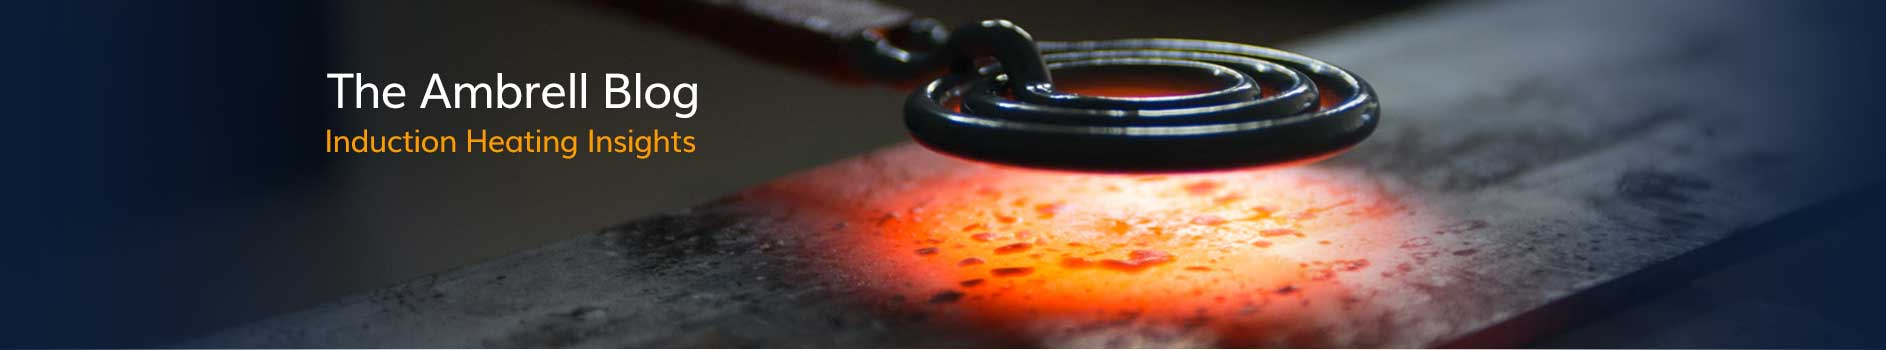 heating a steel plate